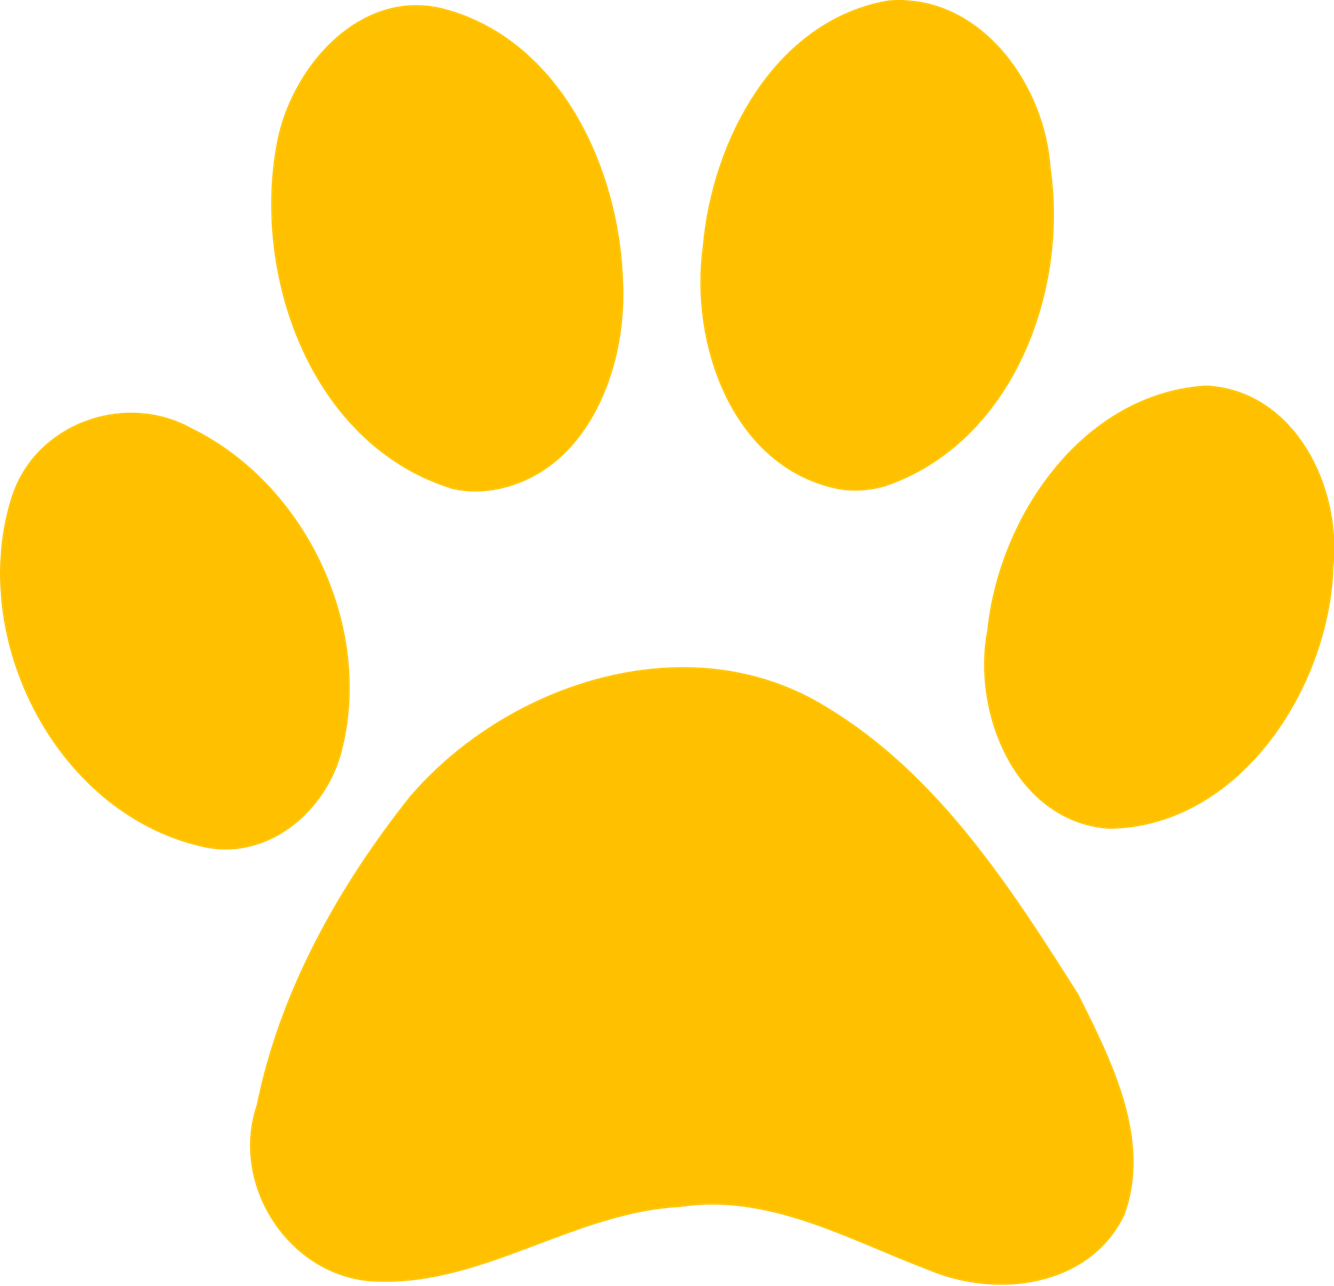 Transparent paw yellow. Paws program paroling animals